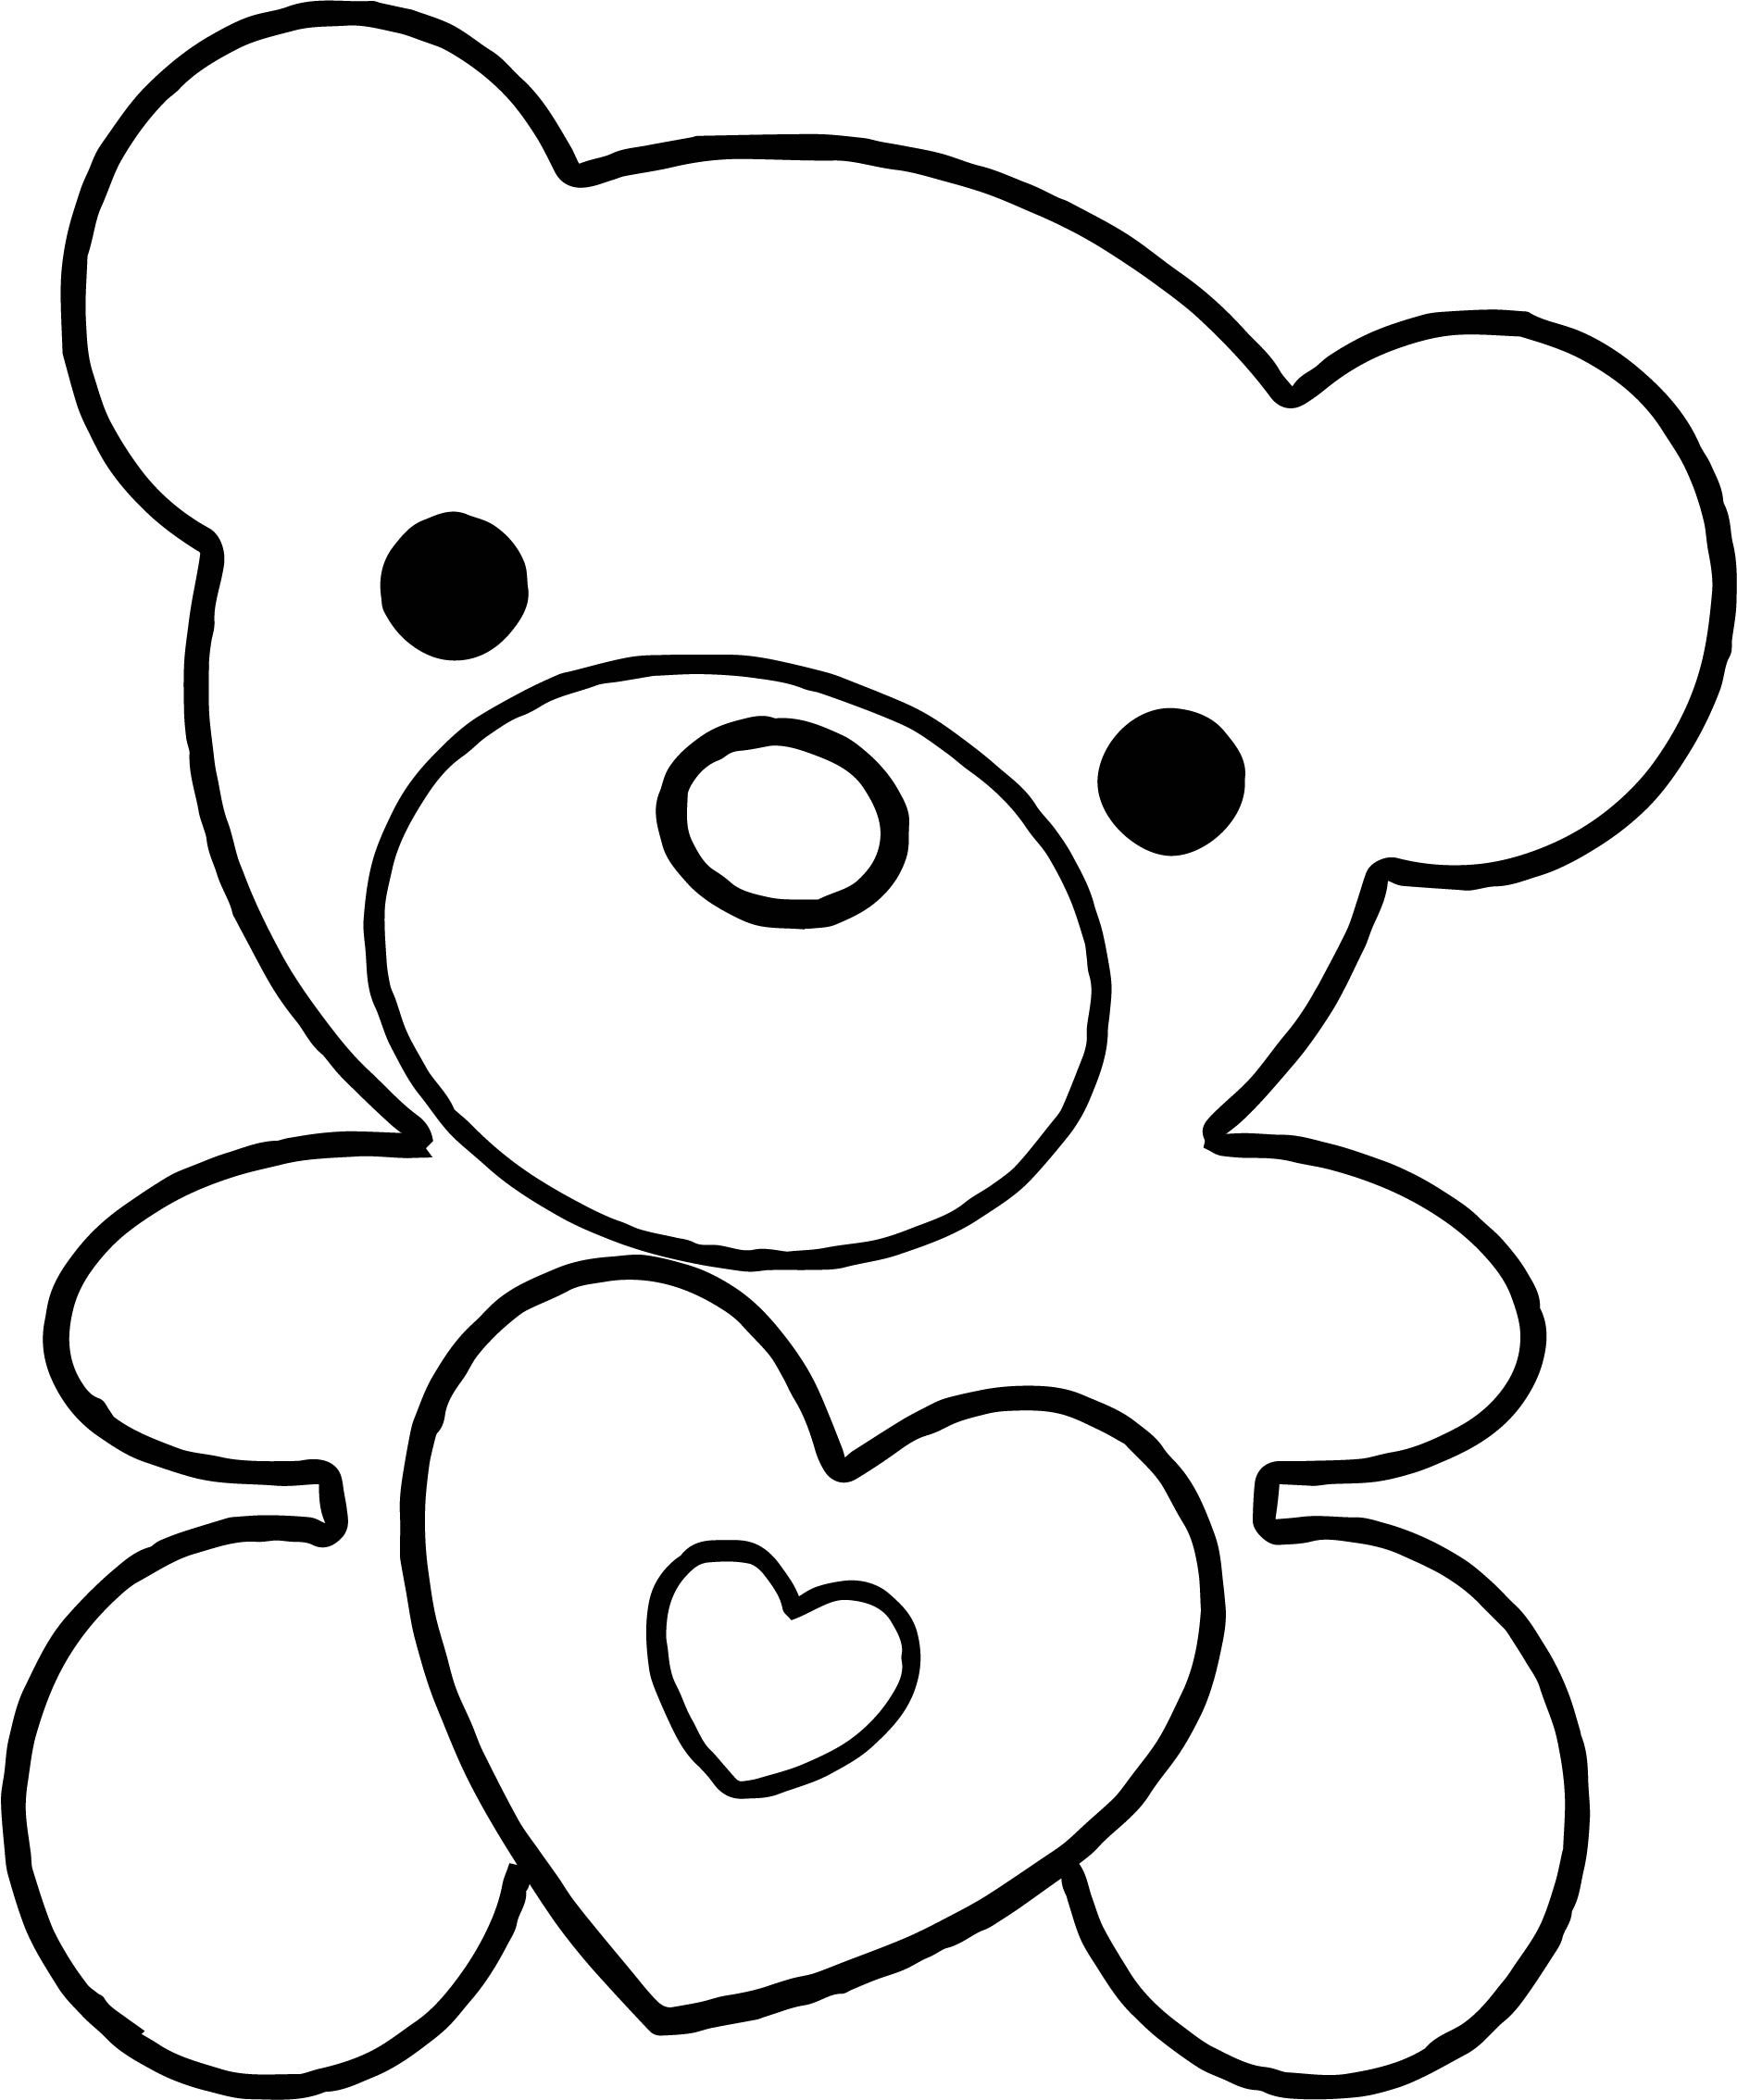 nice Must Bear Coloring Page Bear coloring pages